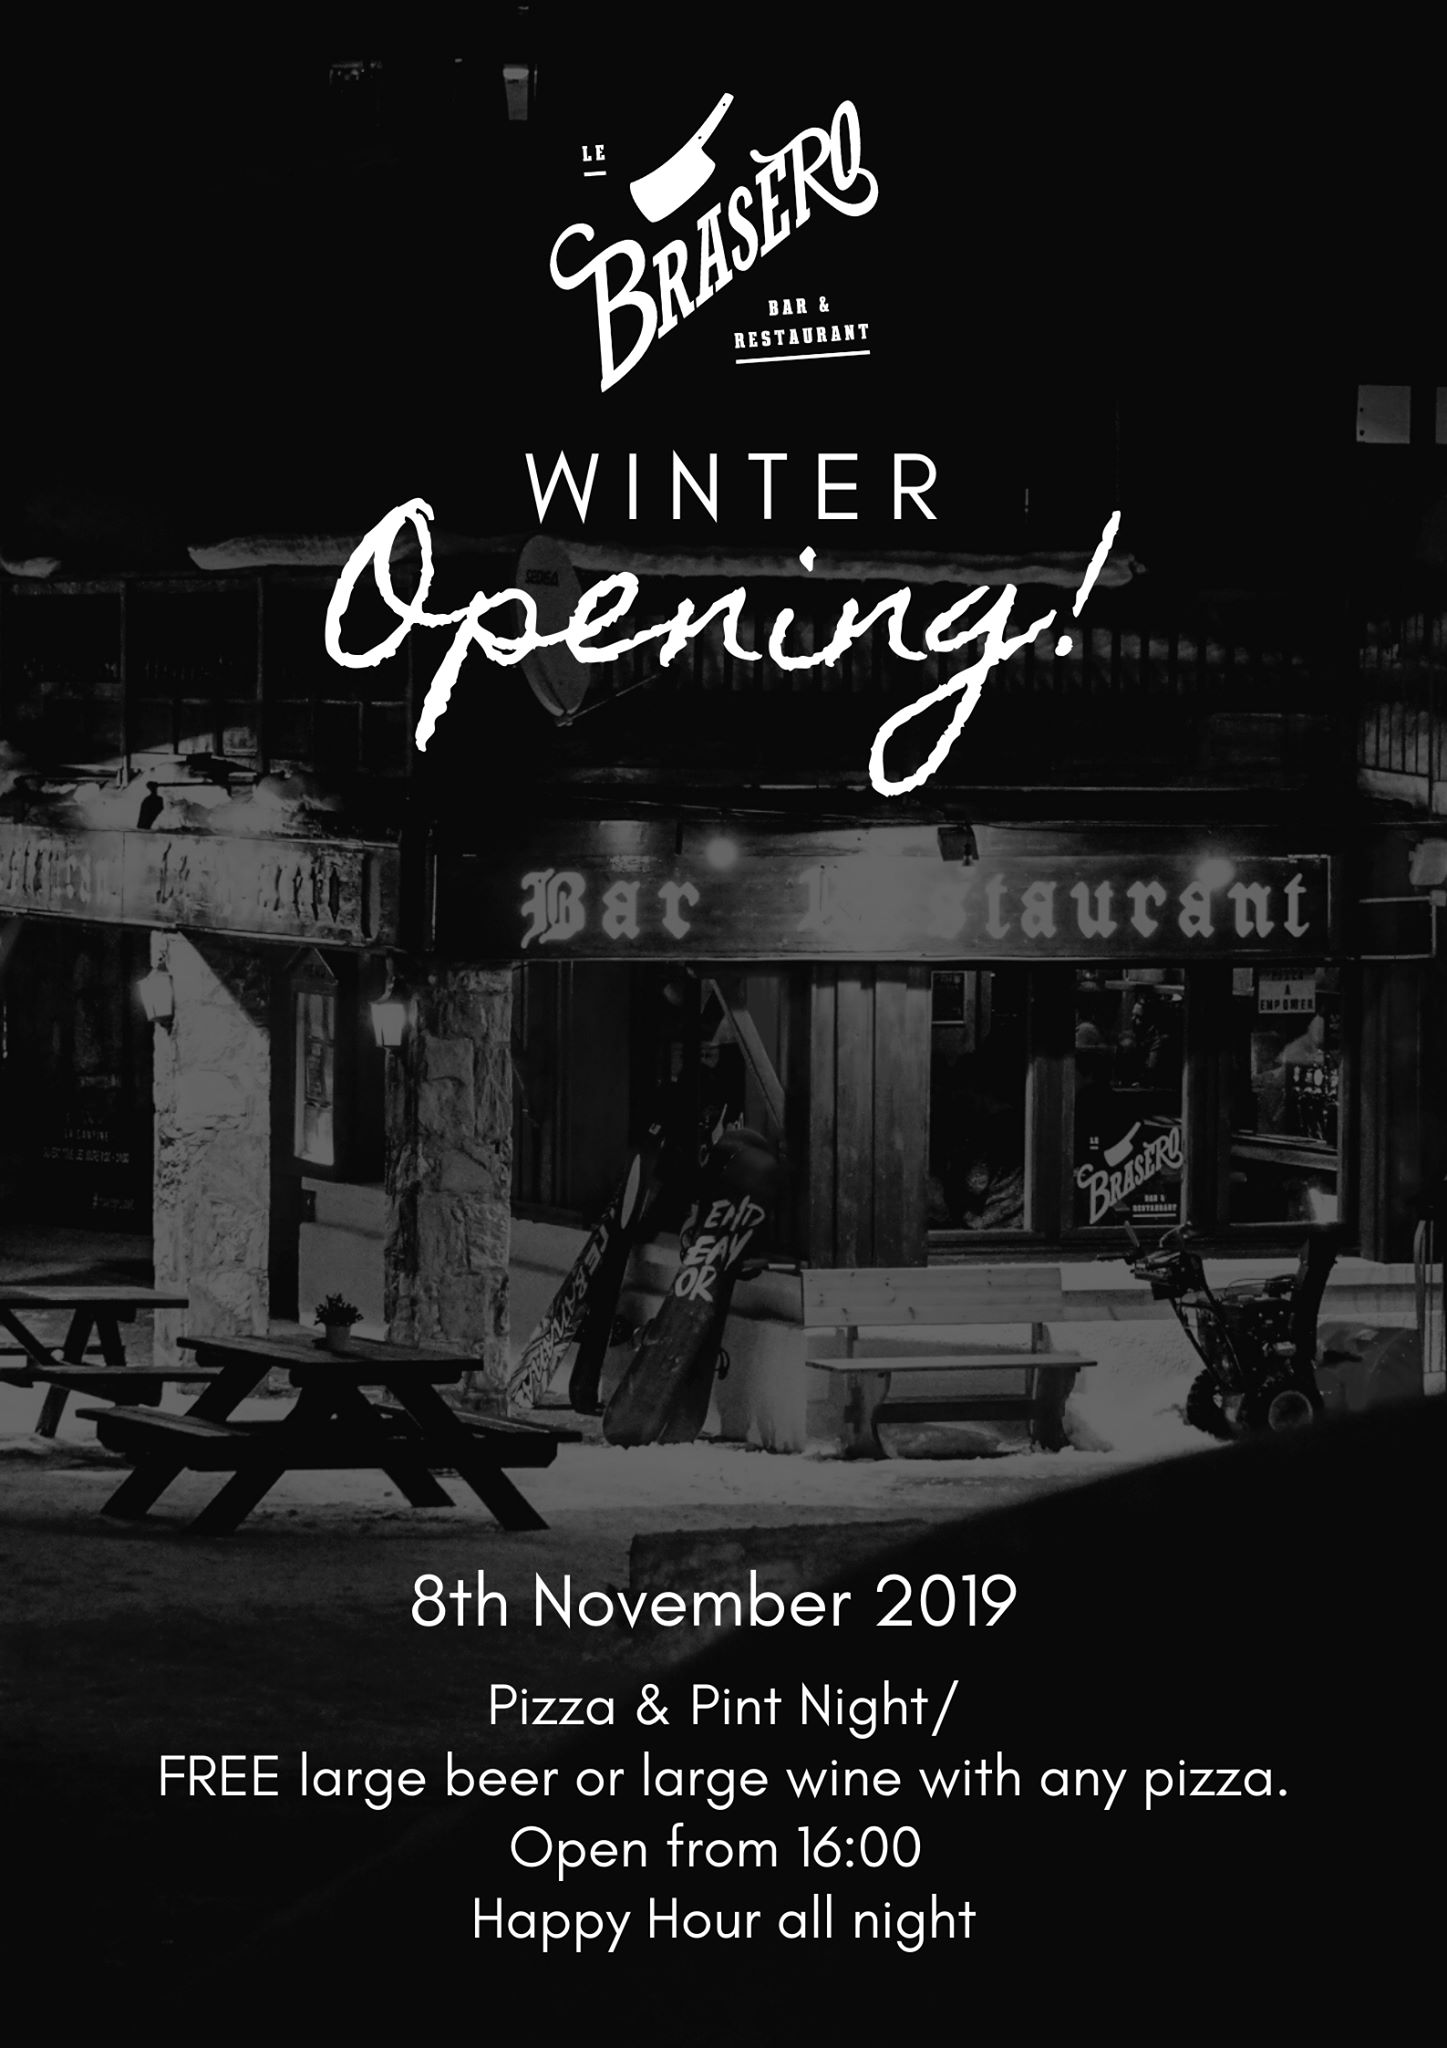 BRASERO OPENING WINTER 19/20